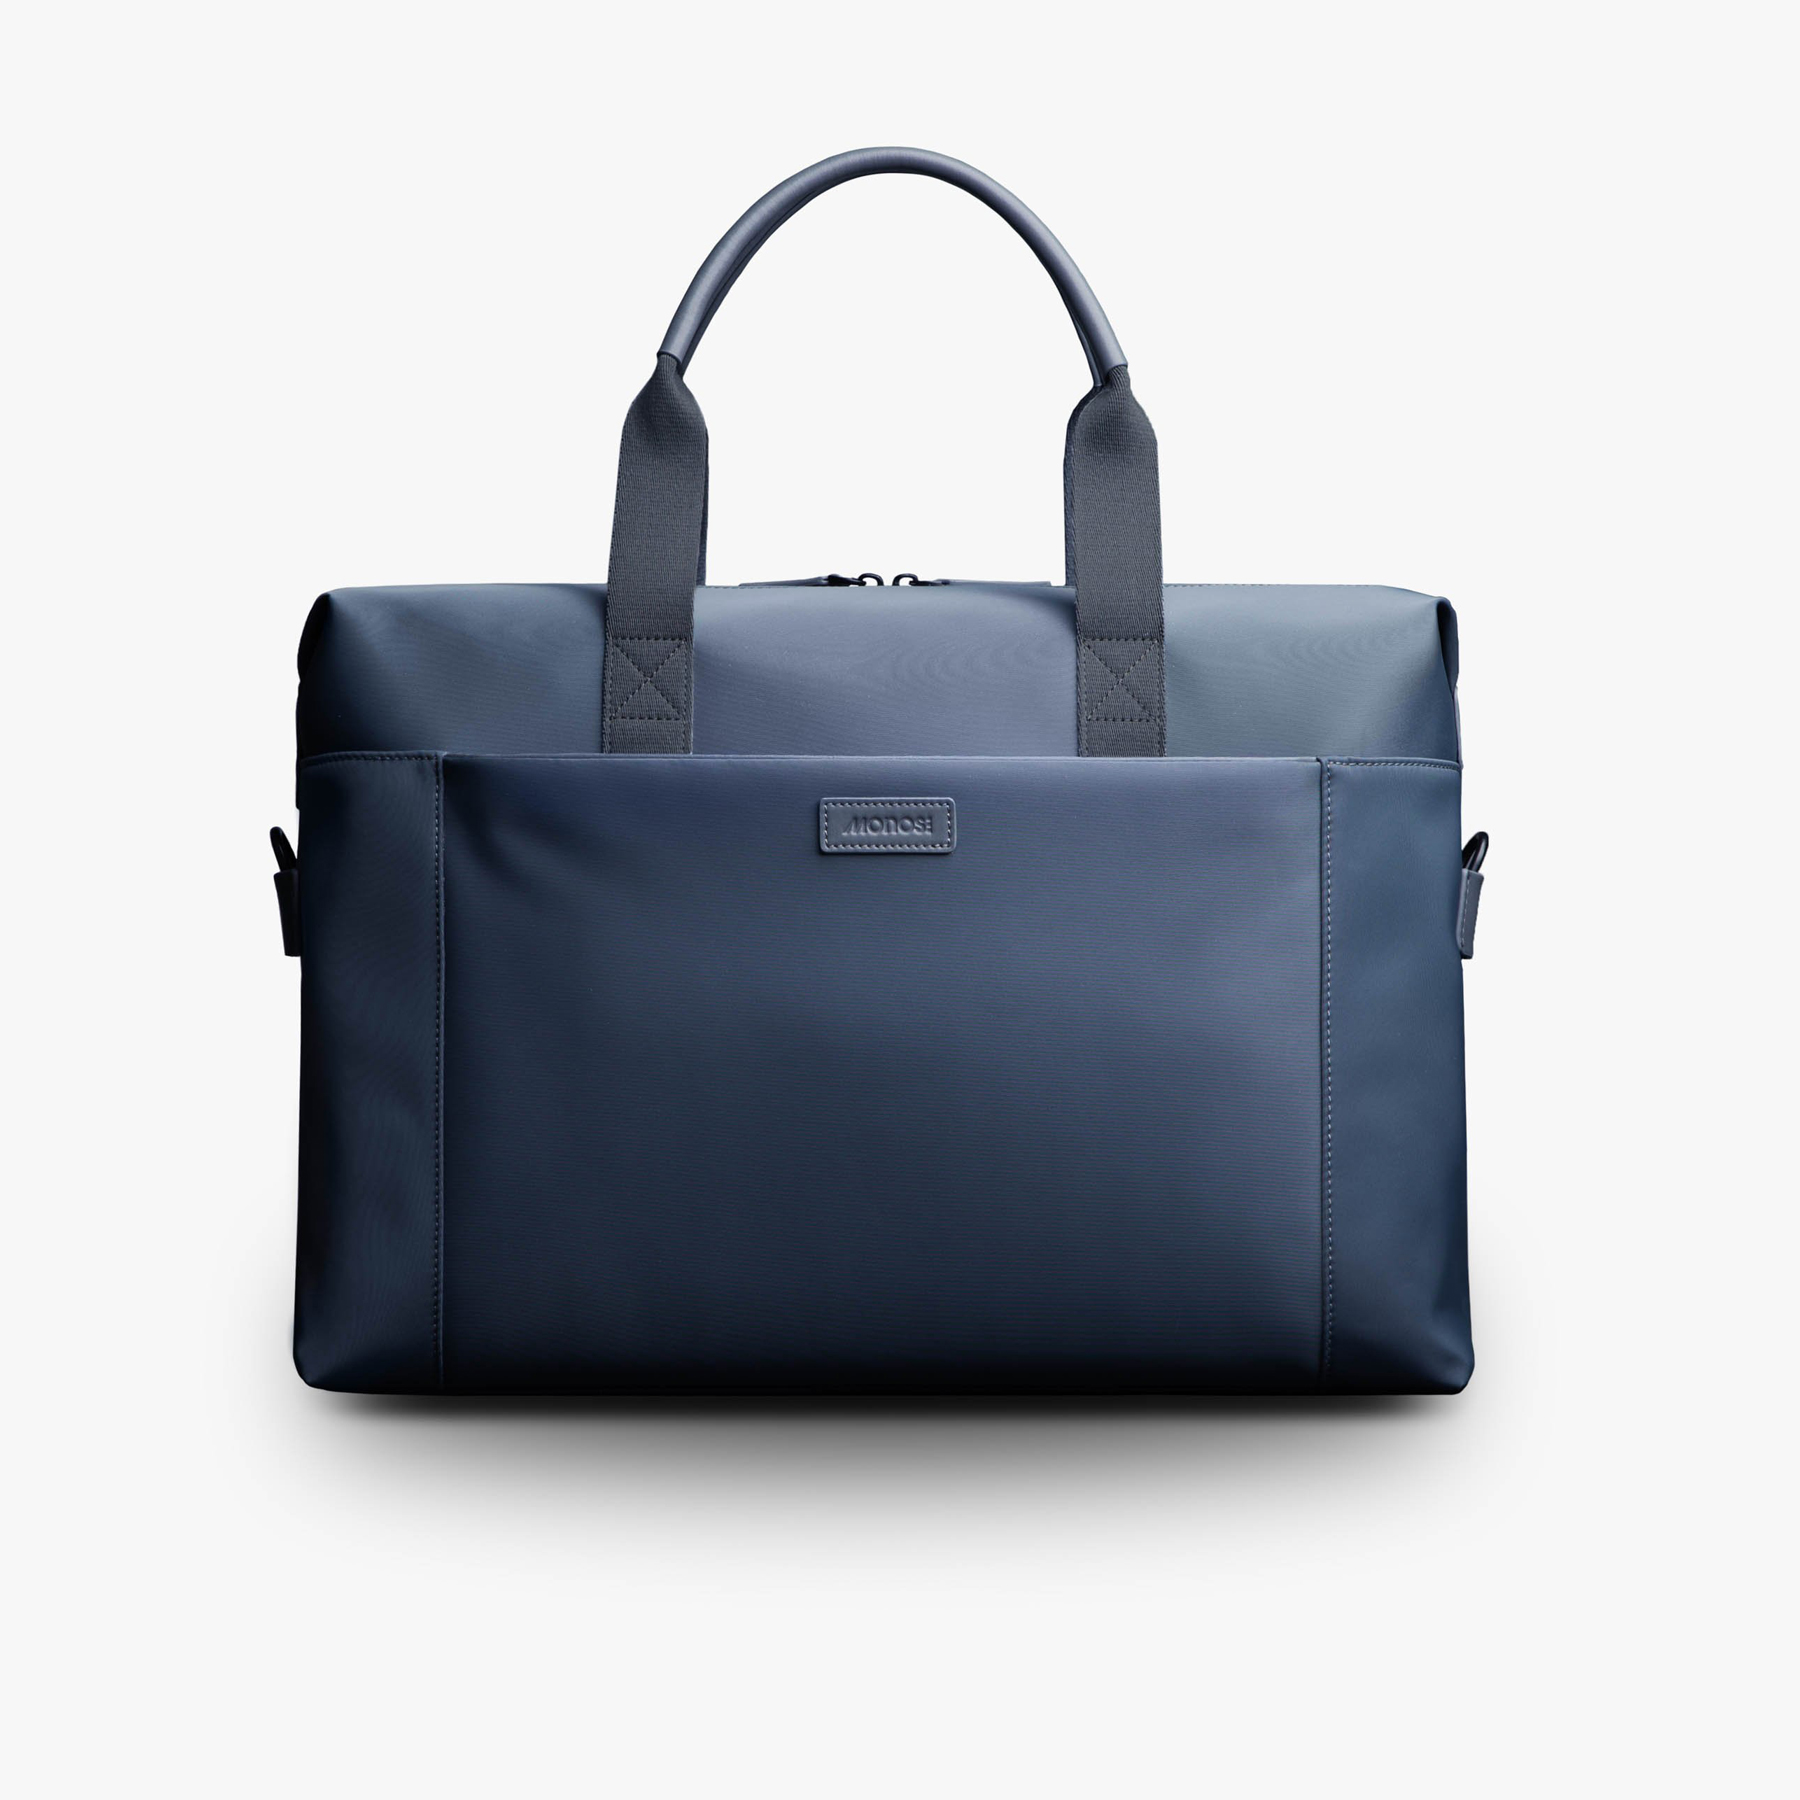 Gifts for dad, stepdad, father-in-law - Monos Metro Duffel